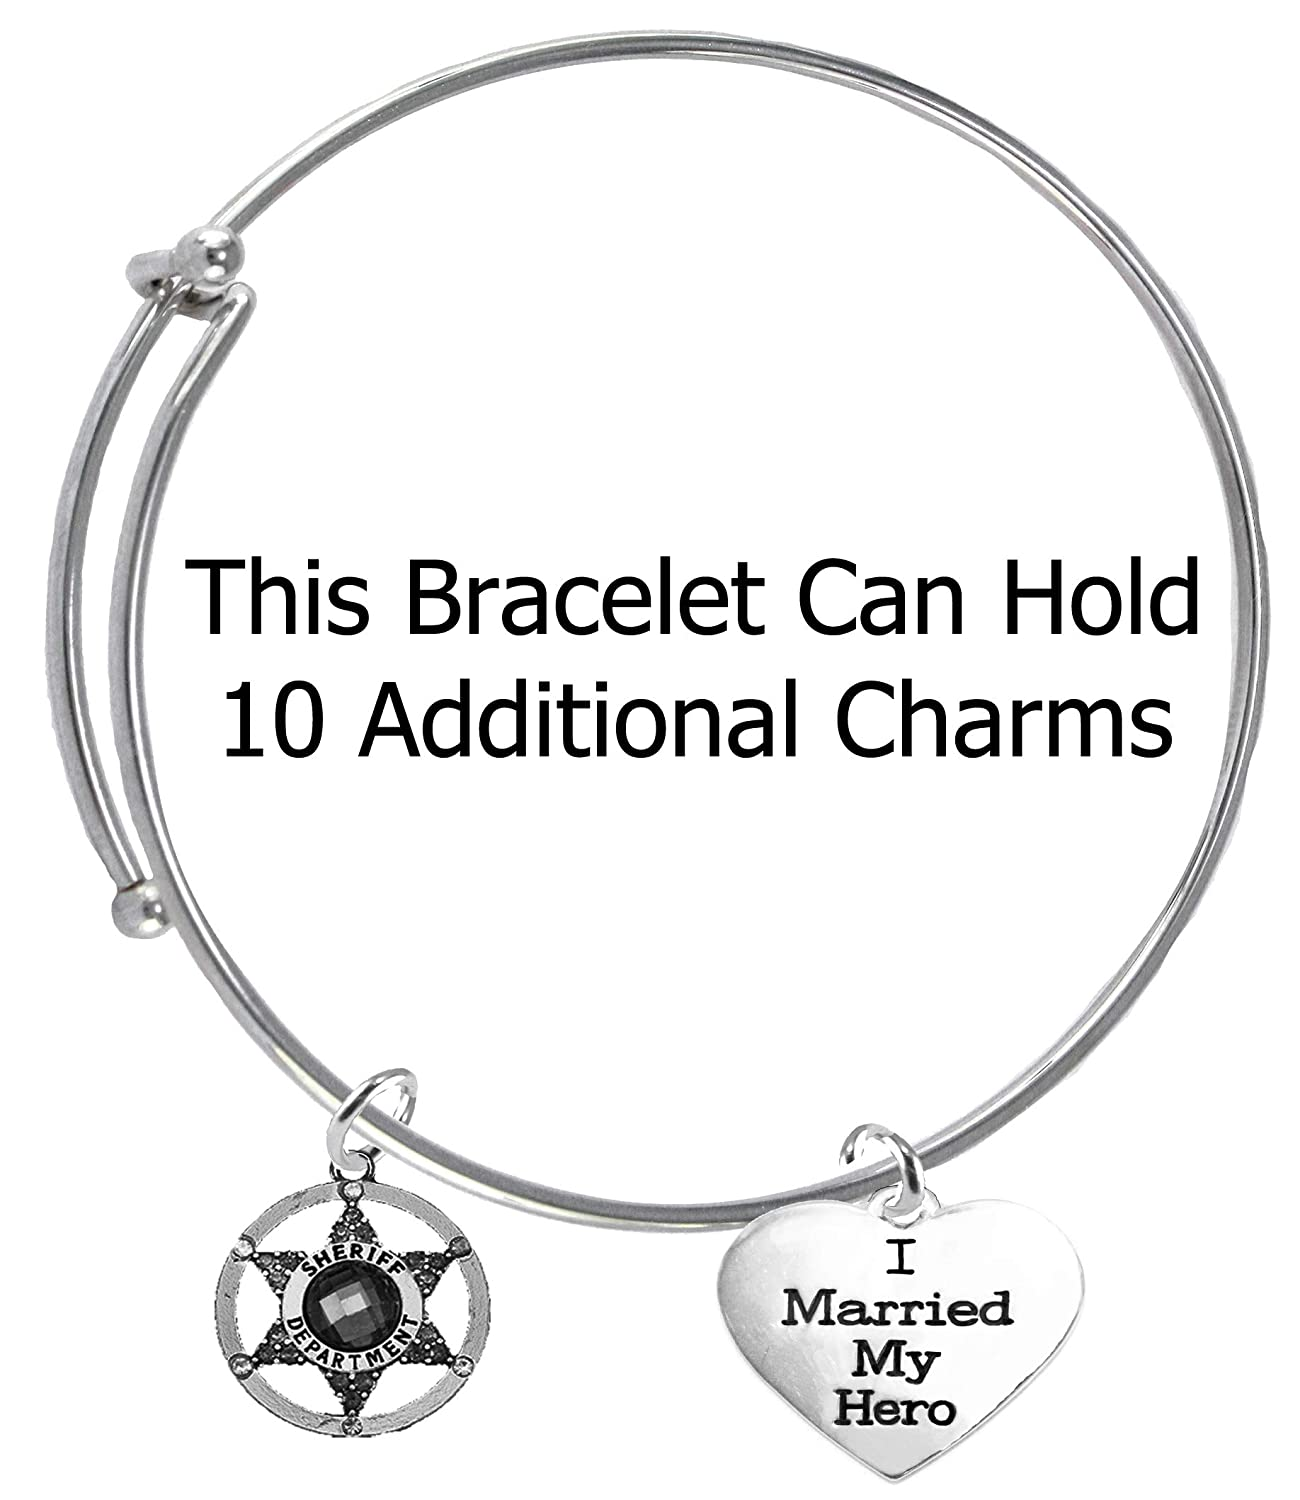 I Married My Hero Hypoallergenic Safe-Nickel Cardinali Jewelry Deputy Sheriffs On A Adjustable Miracle Wire Bracelet Lead and Cadmium Free